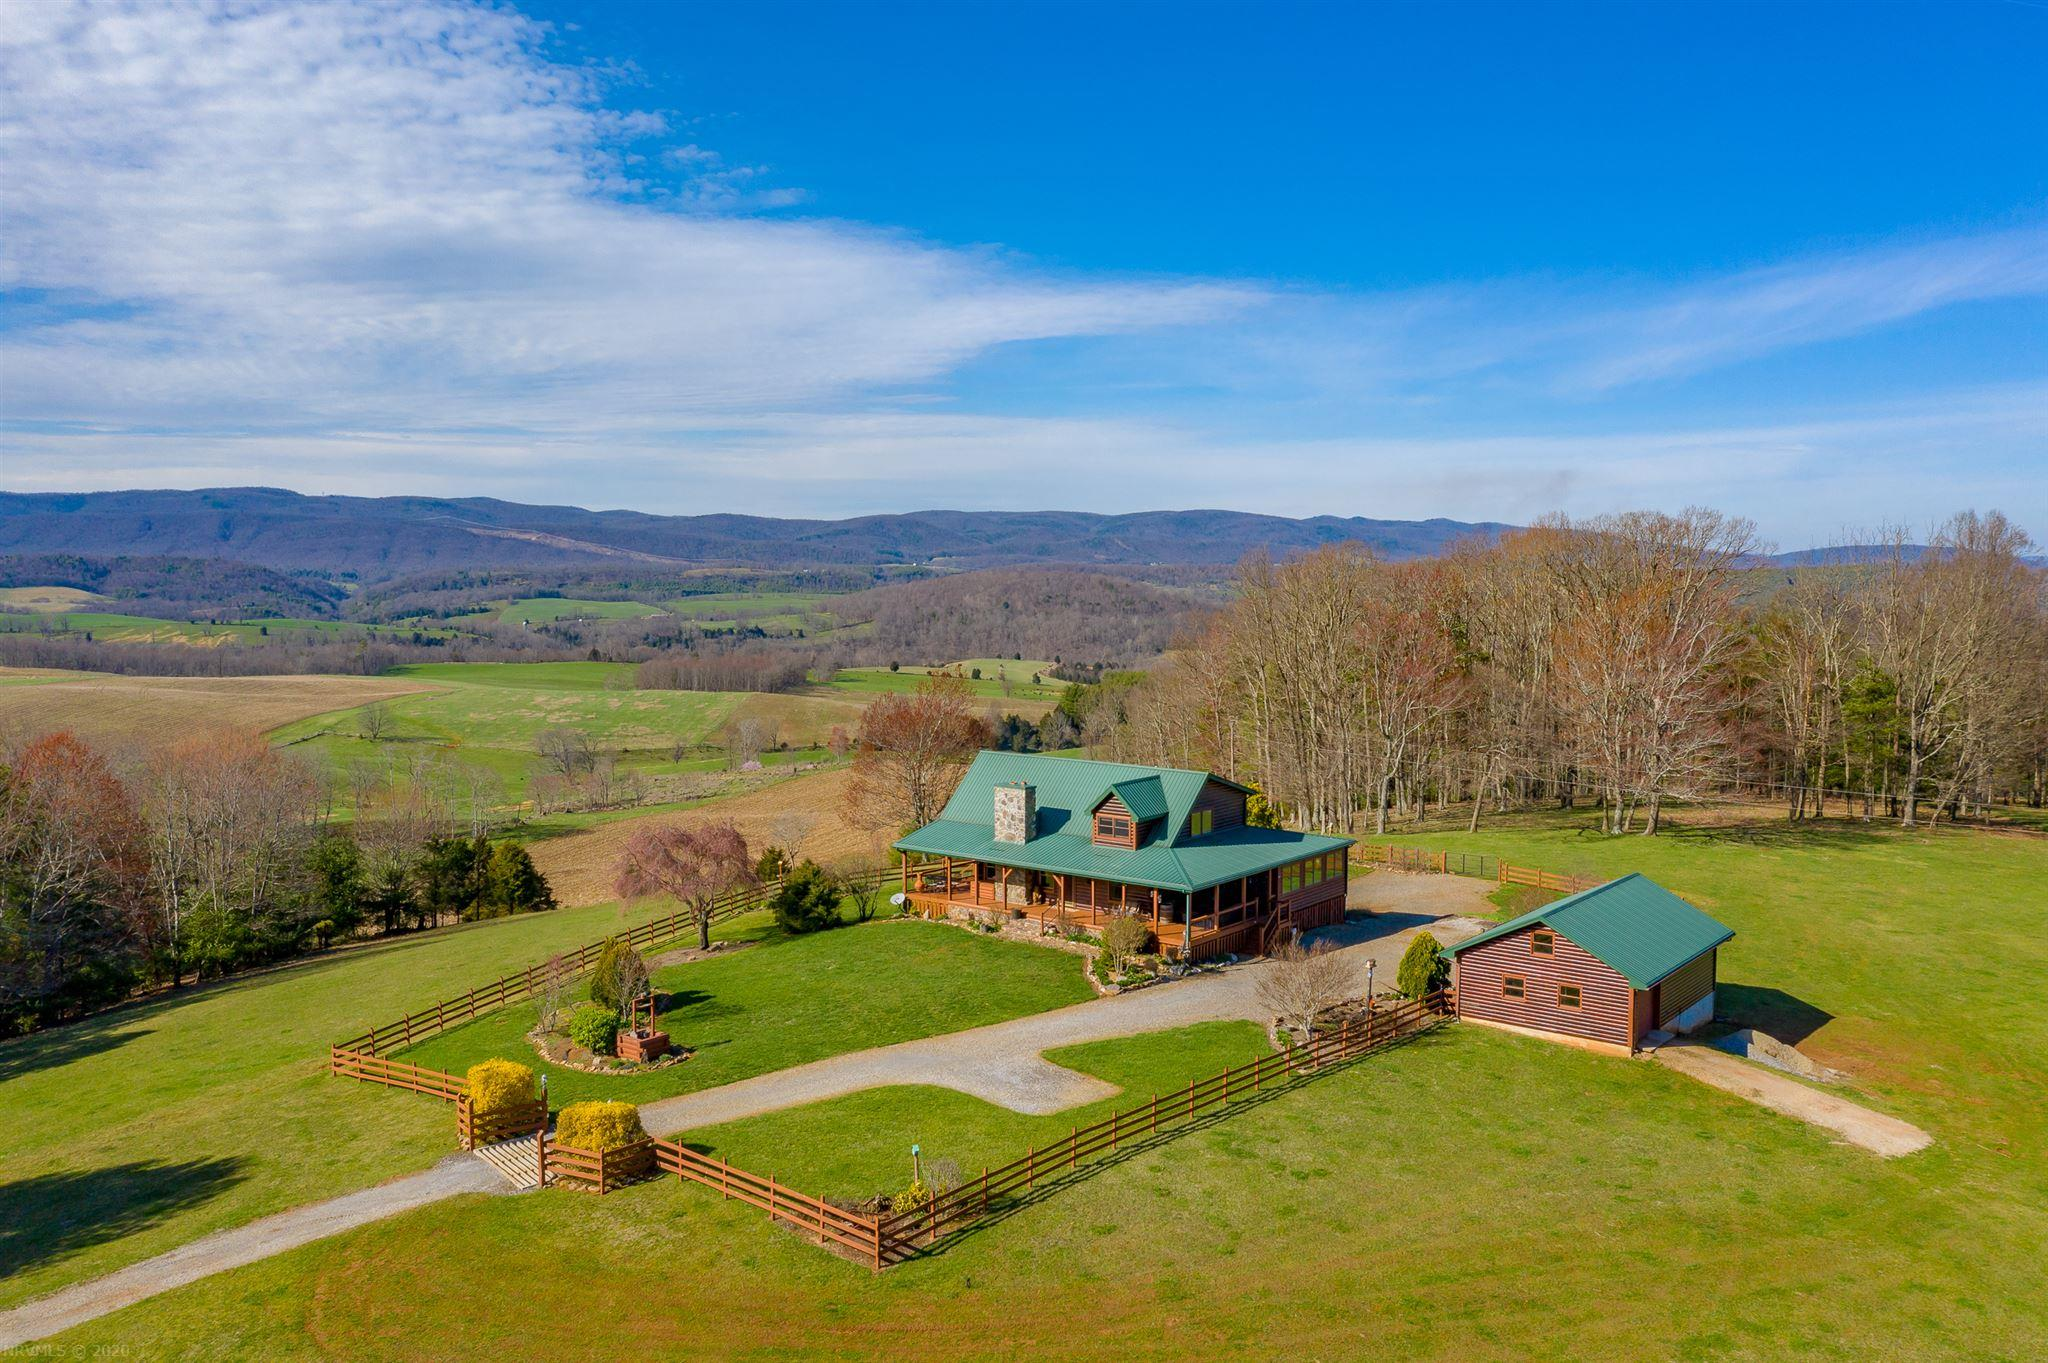 Privacy, Mountain Views & borders the Jefferson National Forest. This log home on 22+ acres truly has everything you could want in a mountain retreat. Located just 20 min. from the I-81/I-77 intersect & 30 min. to Downtown Wytheville it is an absolute wonder that you can be so close to amenities yet have complete privacy at your home. The mountain views span for miles and you would be hard pressed to find another home in your view. The main level features an open floor plan with cathedral ceiling, wood burning fireplace, wrap around covered deck, bedroom, full bathroom, laundry and sunroom. Upstairs is a loft/sitting area that is open to the main level and gives access to the master suite. On the lower level is 2 additional bedrooms, full bathroom, workshop, cellar and recreation room/gym. Next to the house is a 36' X 24' garage with a 2 car garage door on the front and a single car garage door that goes to the pasture. There are streams, woods and pasture offering everything you need.